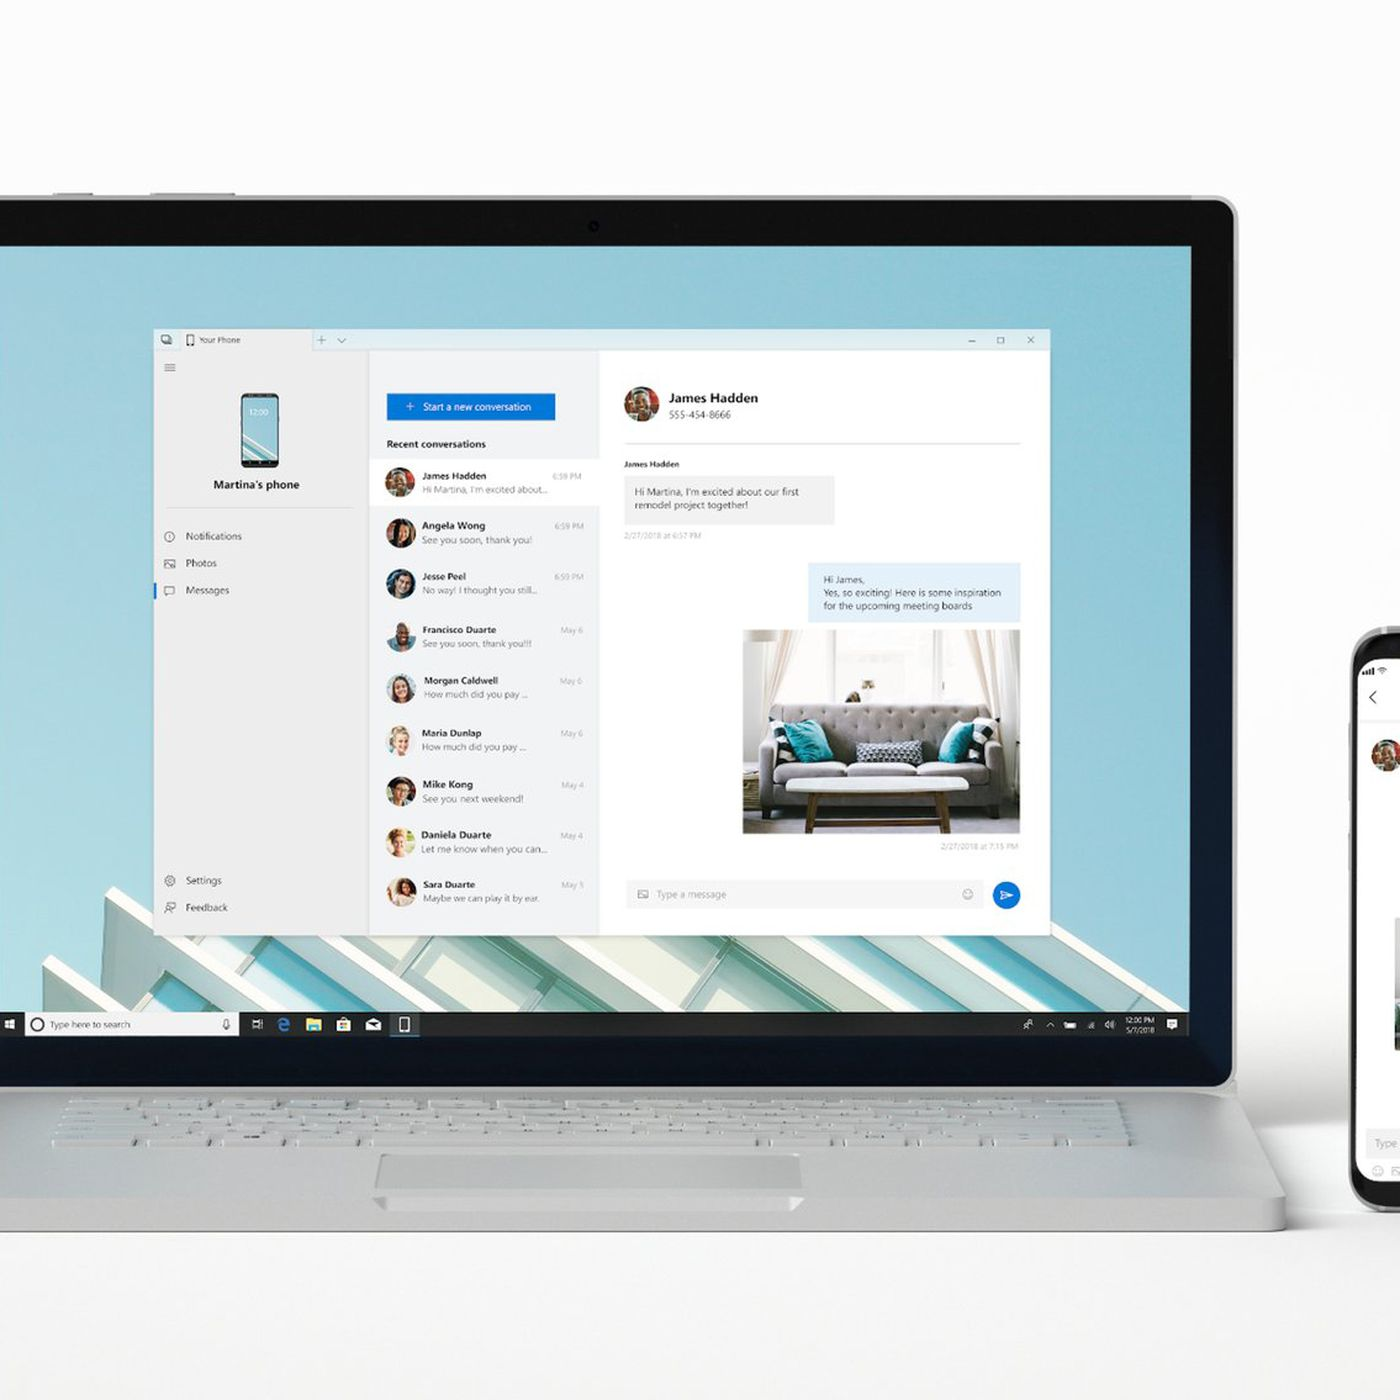 Windows 10 users can now try Microsoft's Your Phone app to mirror